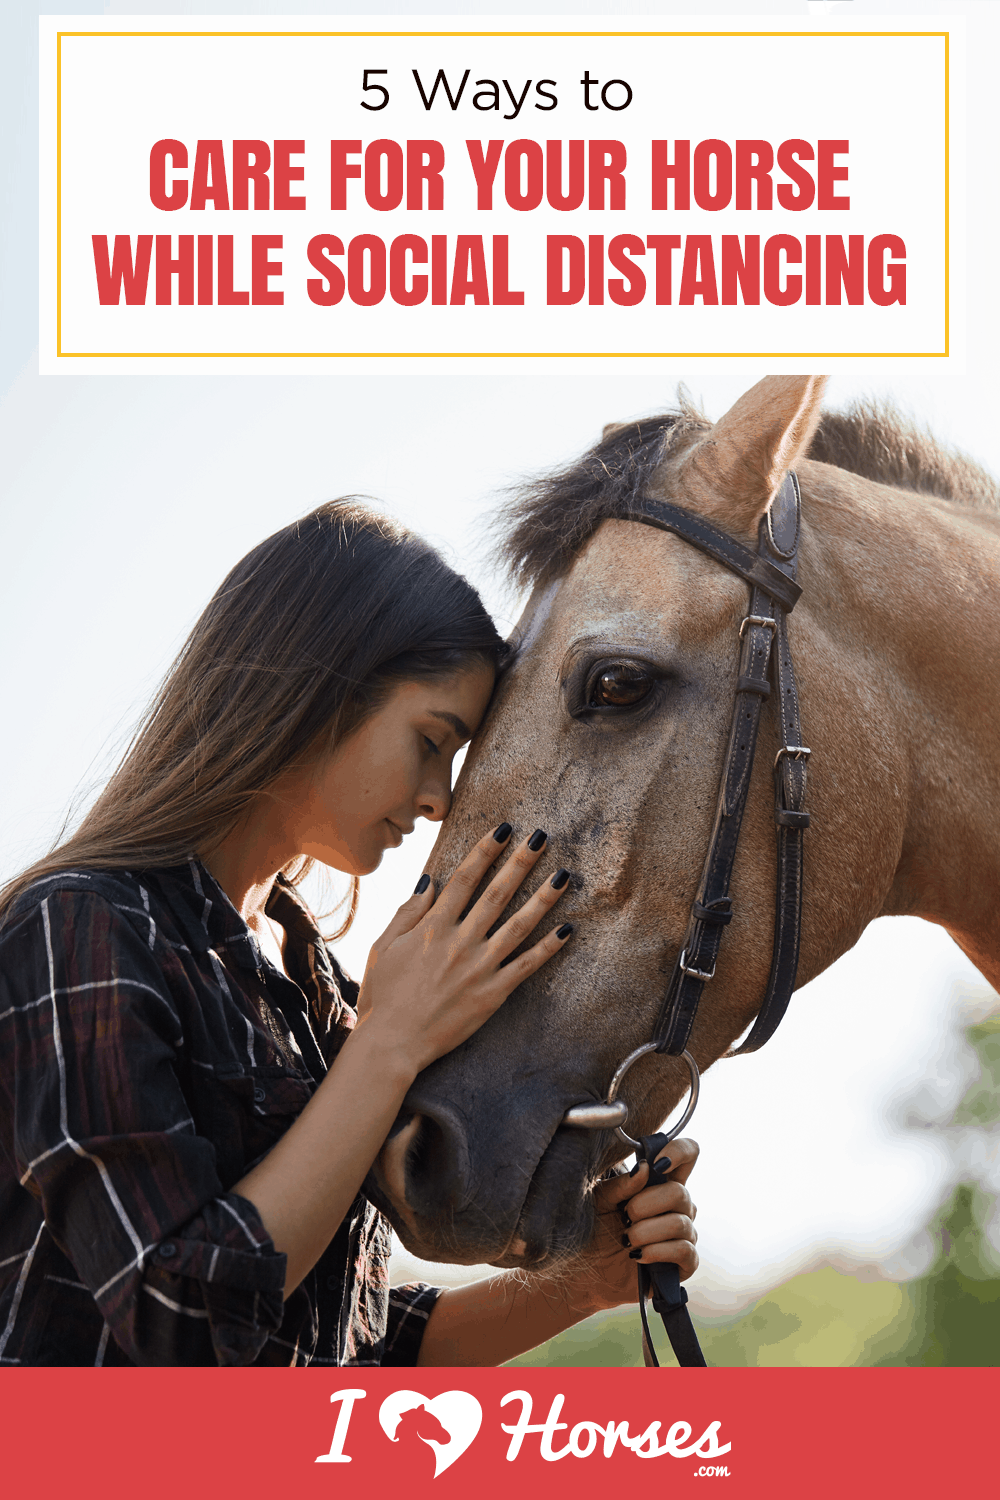 care for horse while social distancing